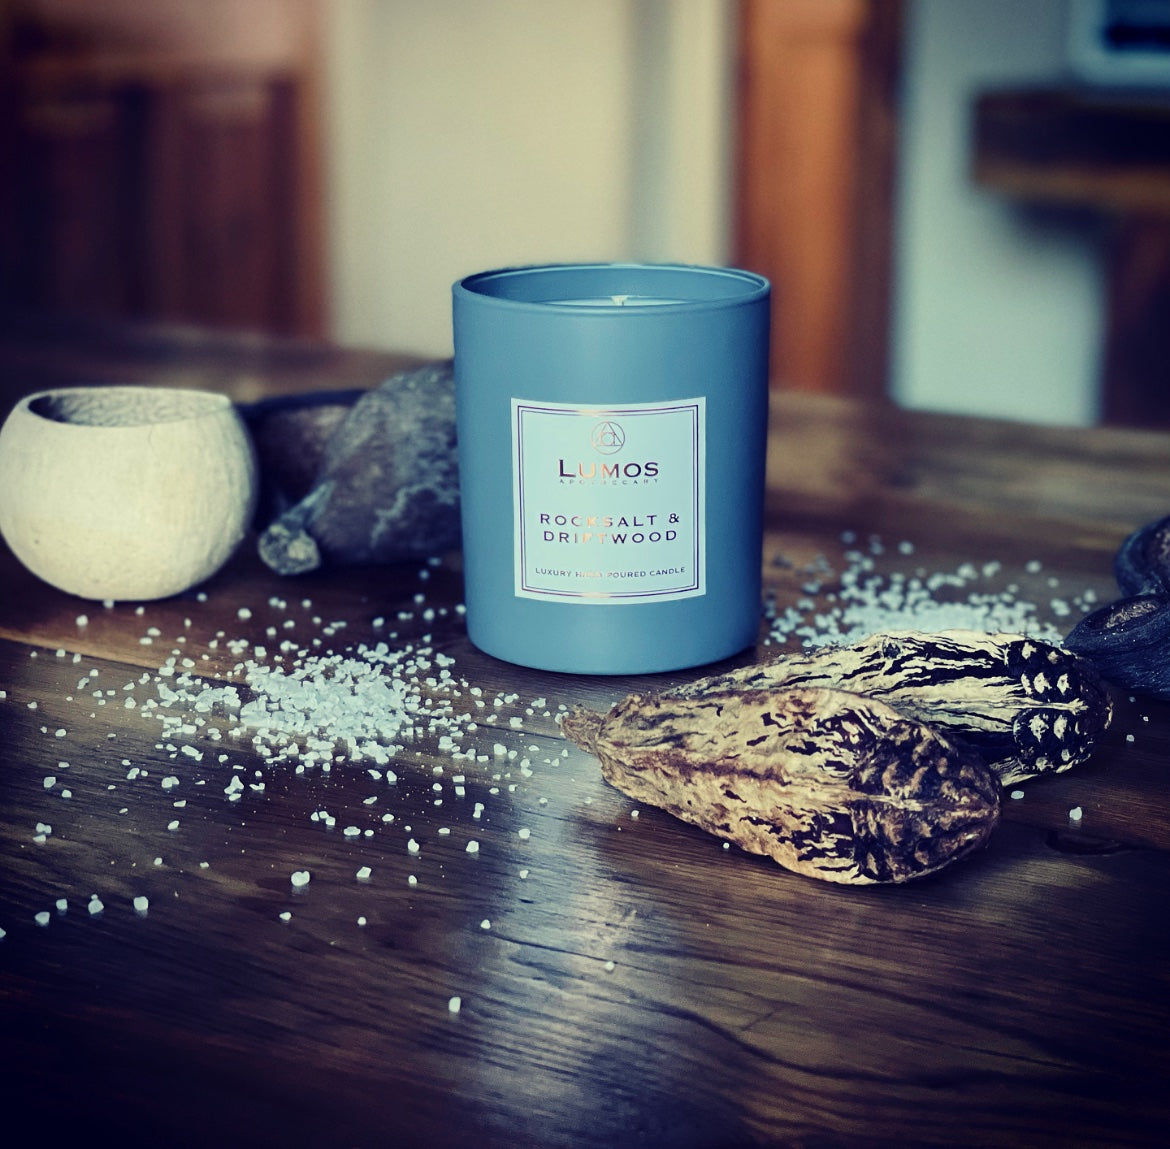 Rock Salt And Driftwood soy wax candle in grey jar on a wooden surface surrounded by salt and sea shells